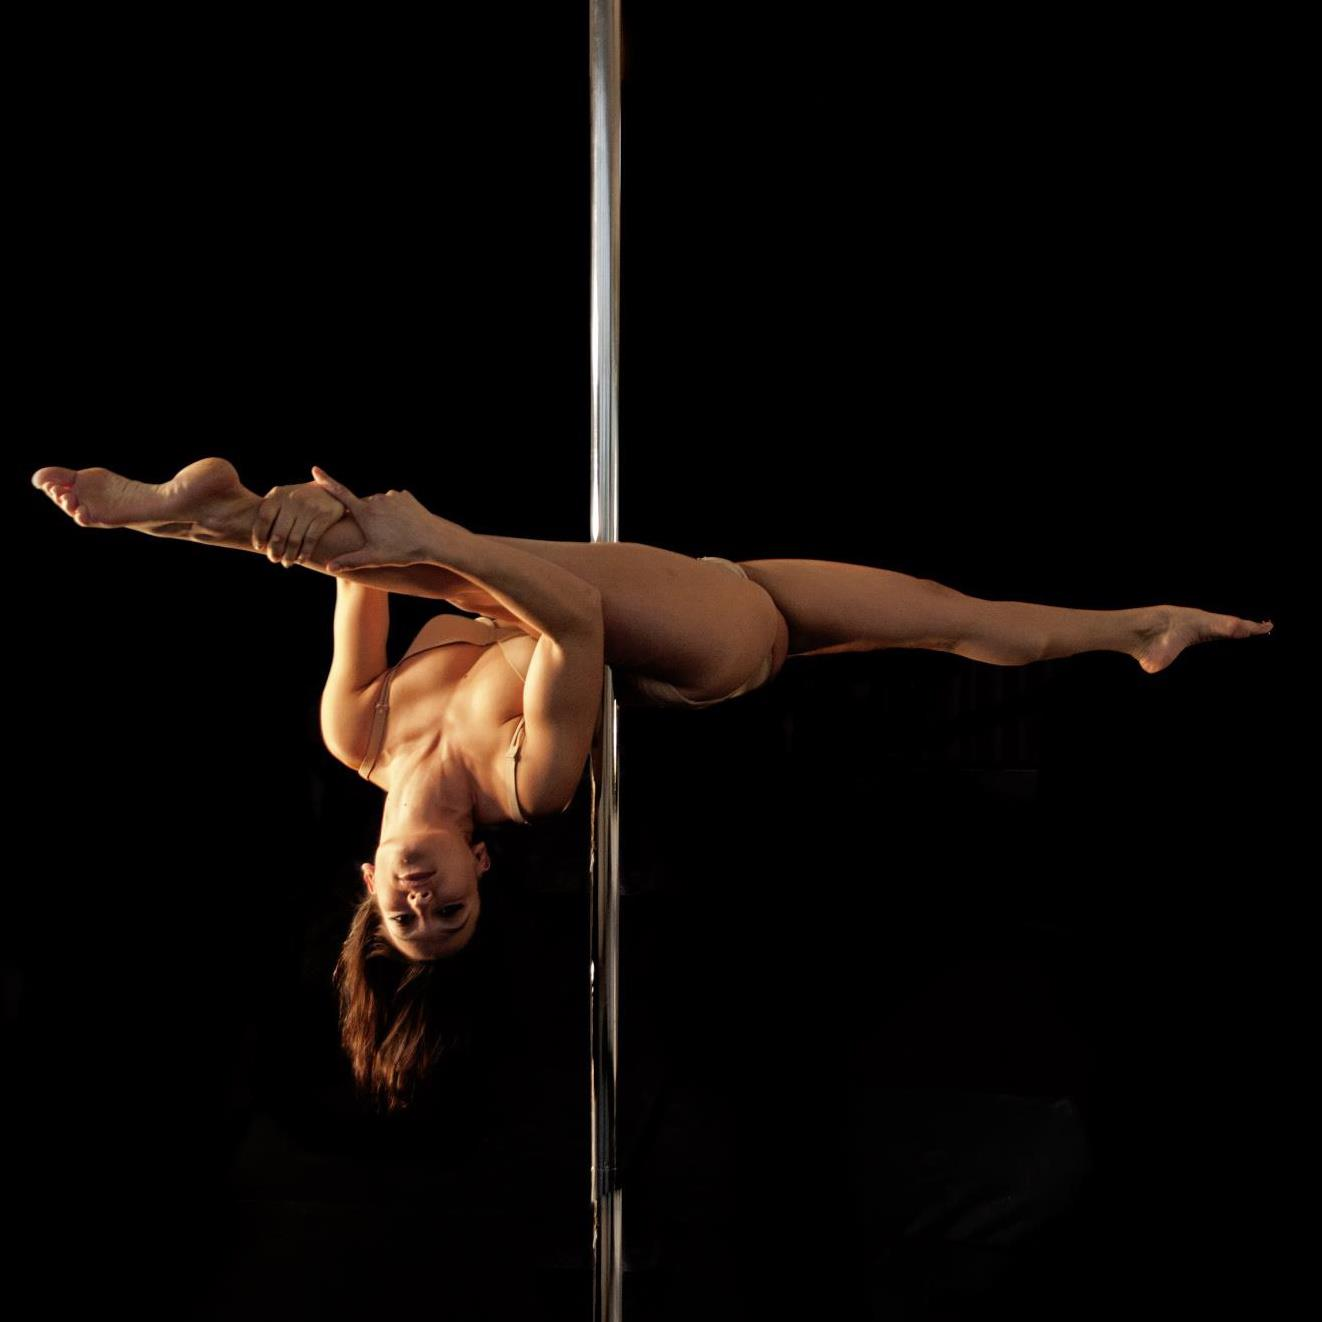 artistes pour num ros mat chinois ou pole dance troupe eklabul. Black Bedroom Furniture Sets. Home Design Ideas